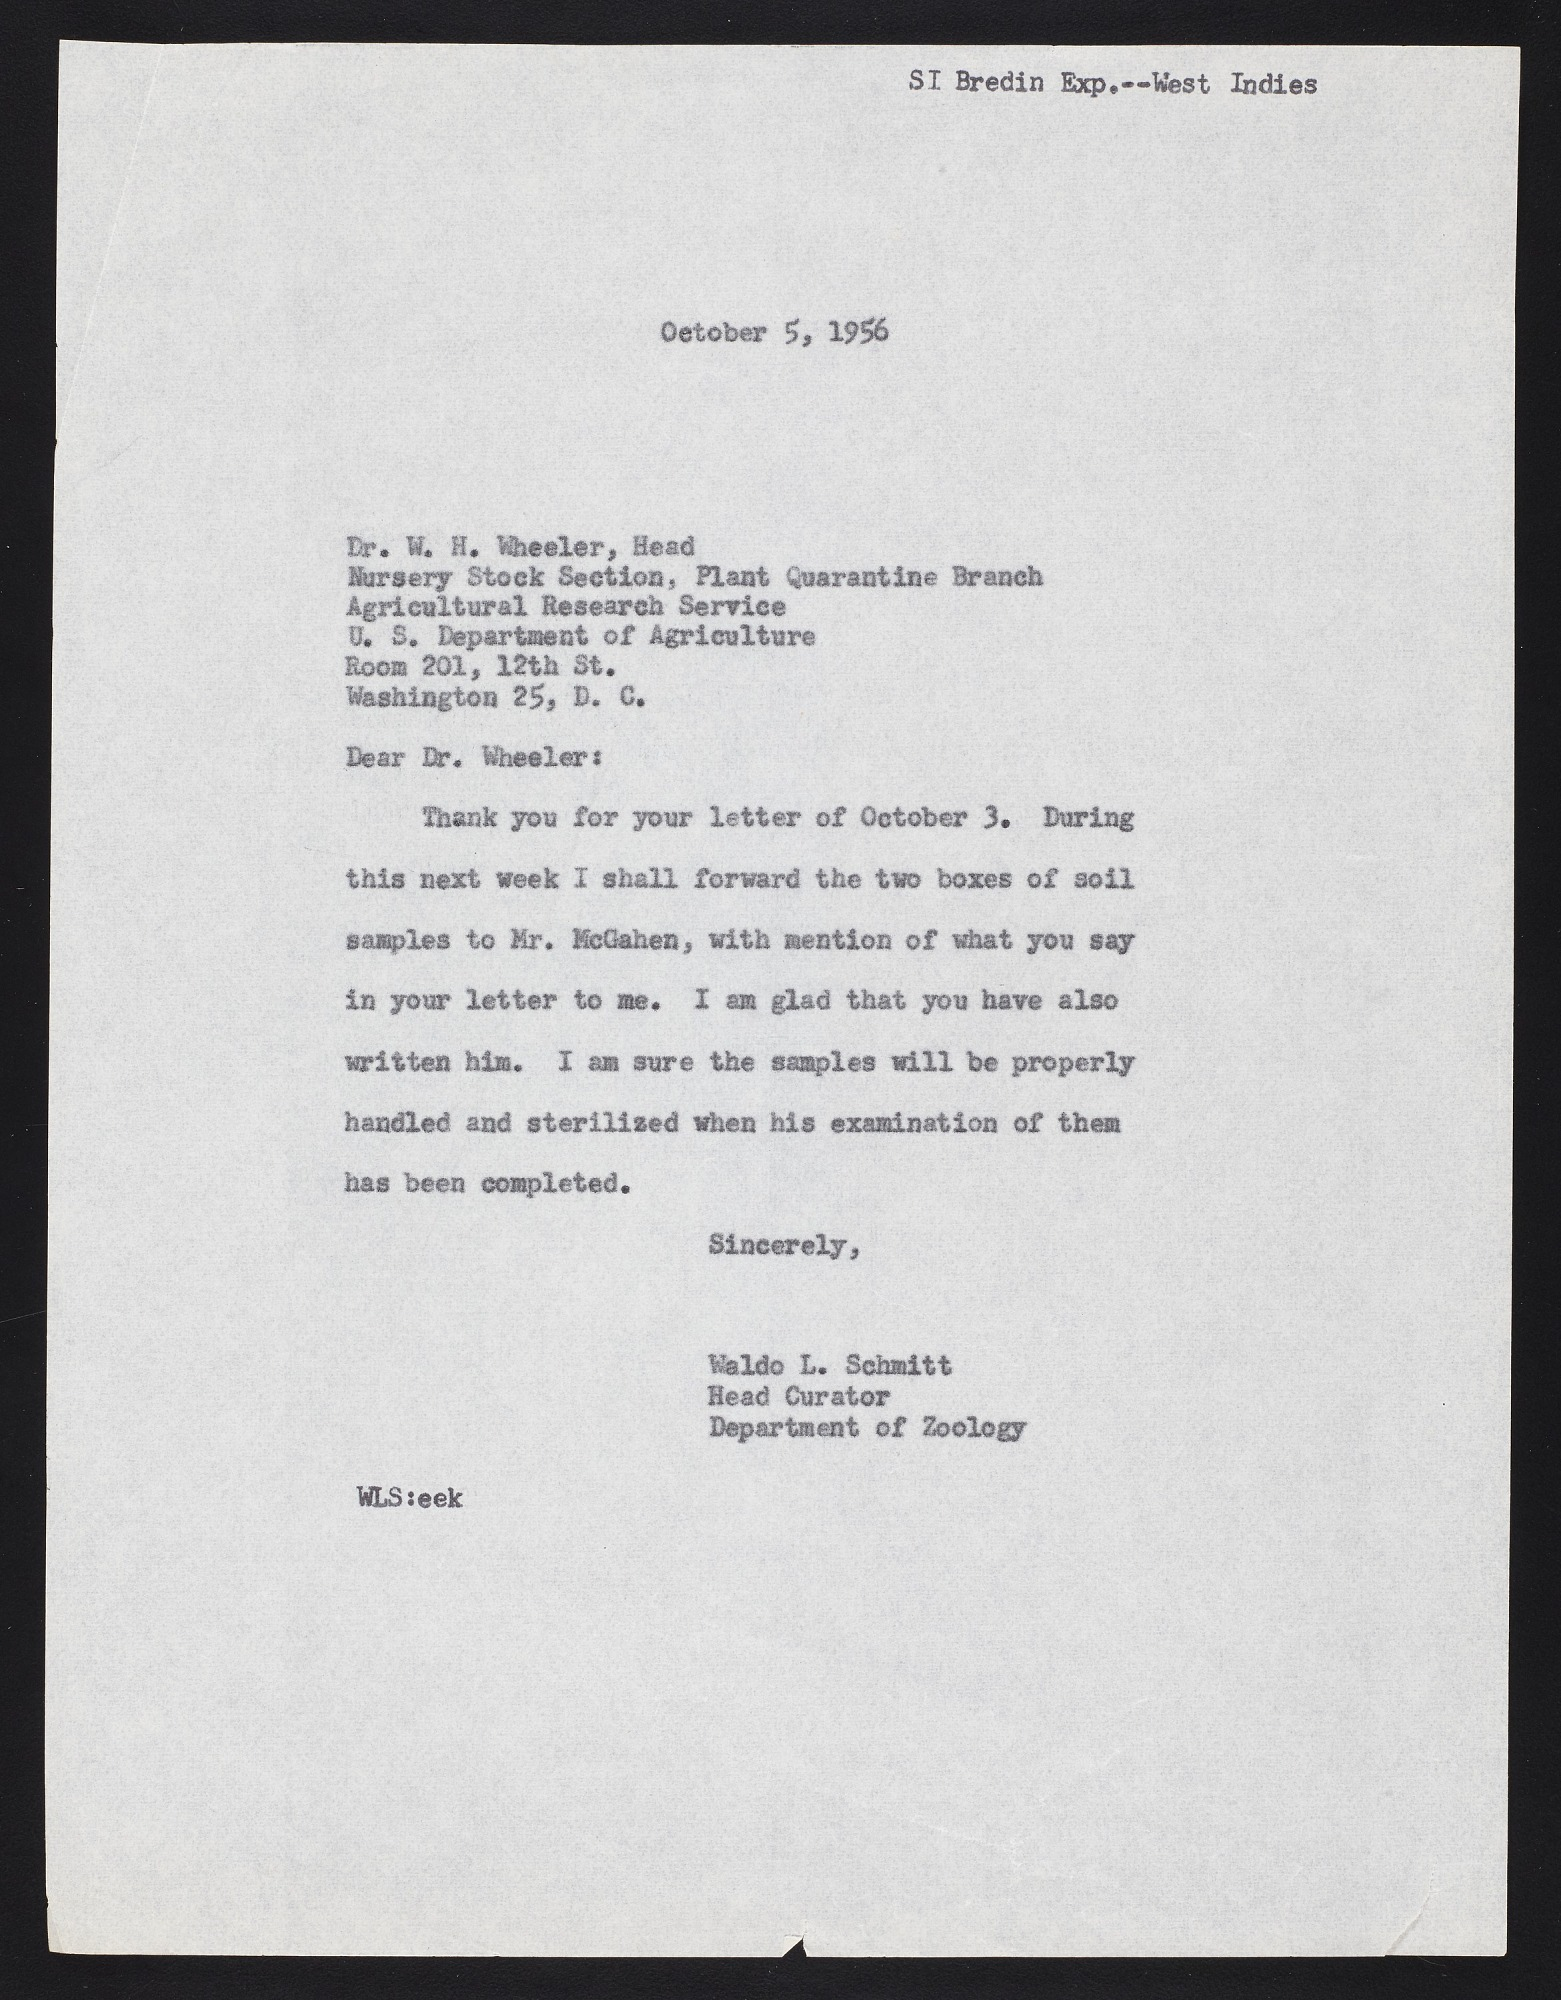 Smithsonian-Bredin Caribbean Expedition, 1956 : correspondence